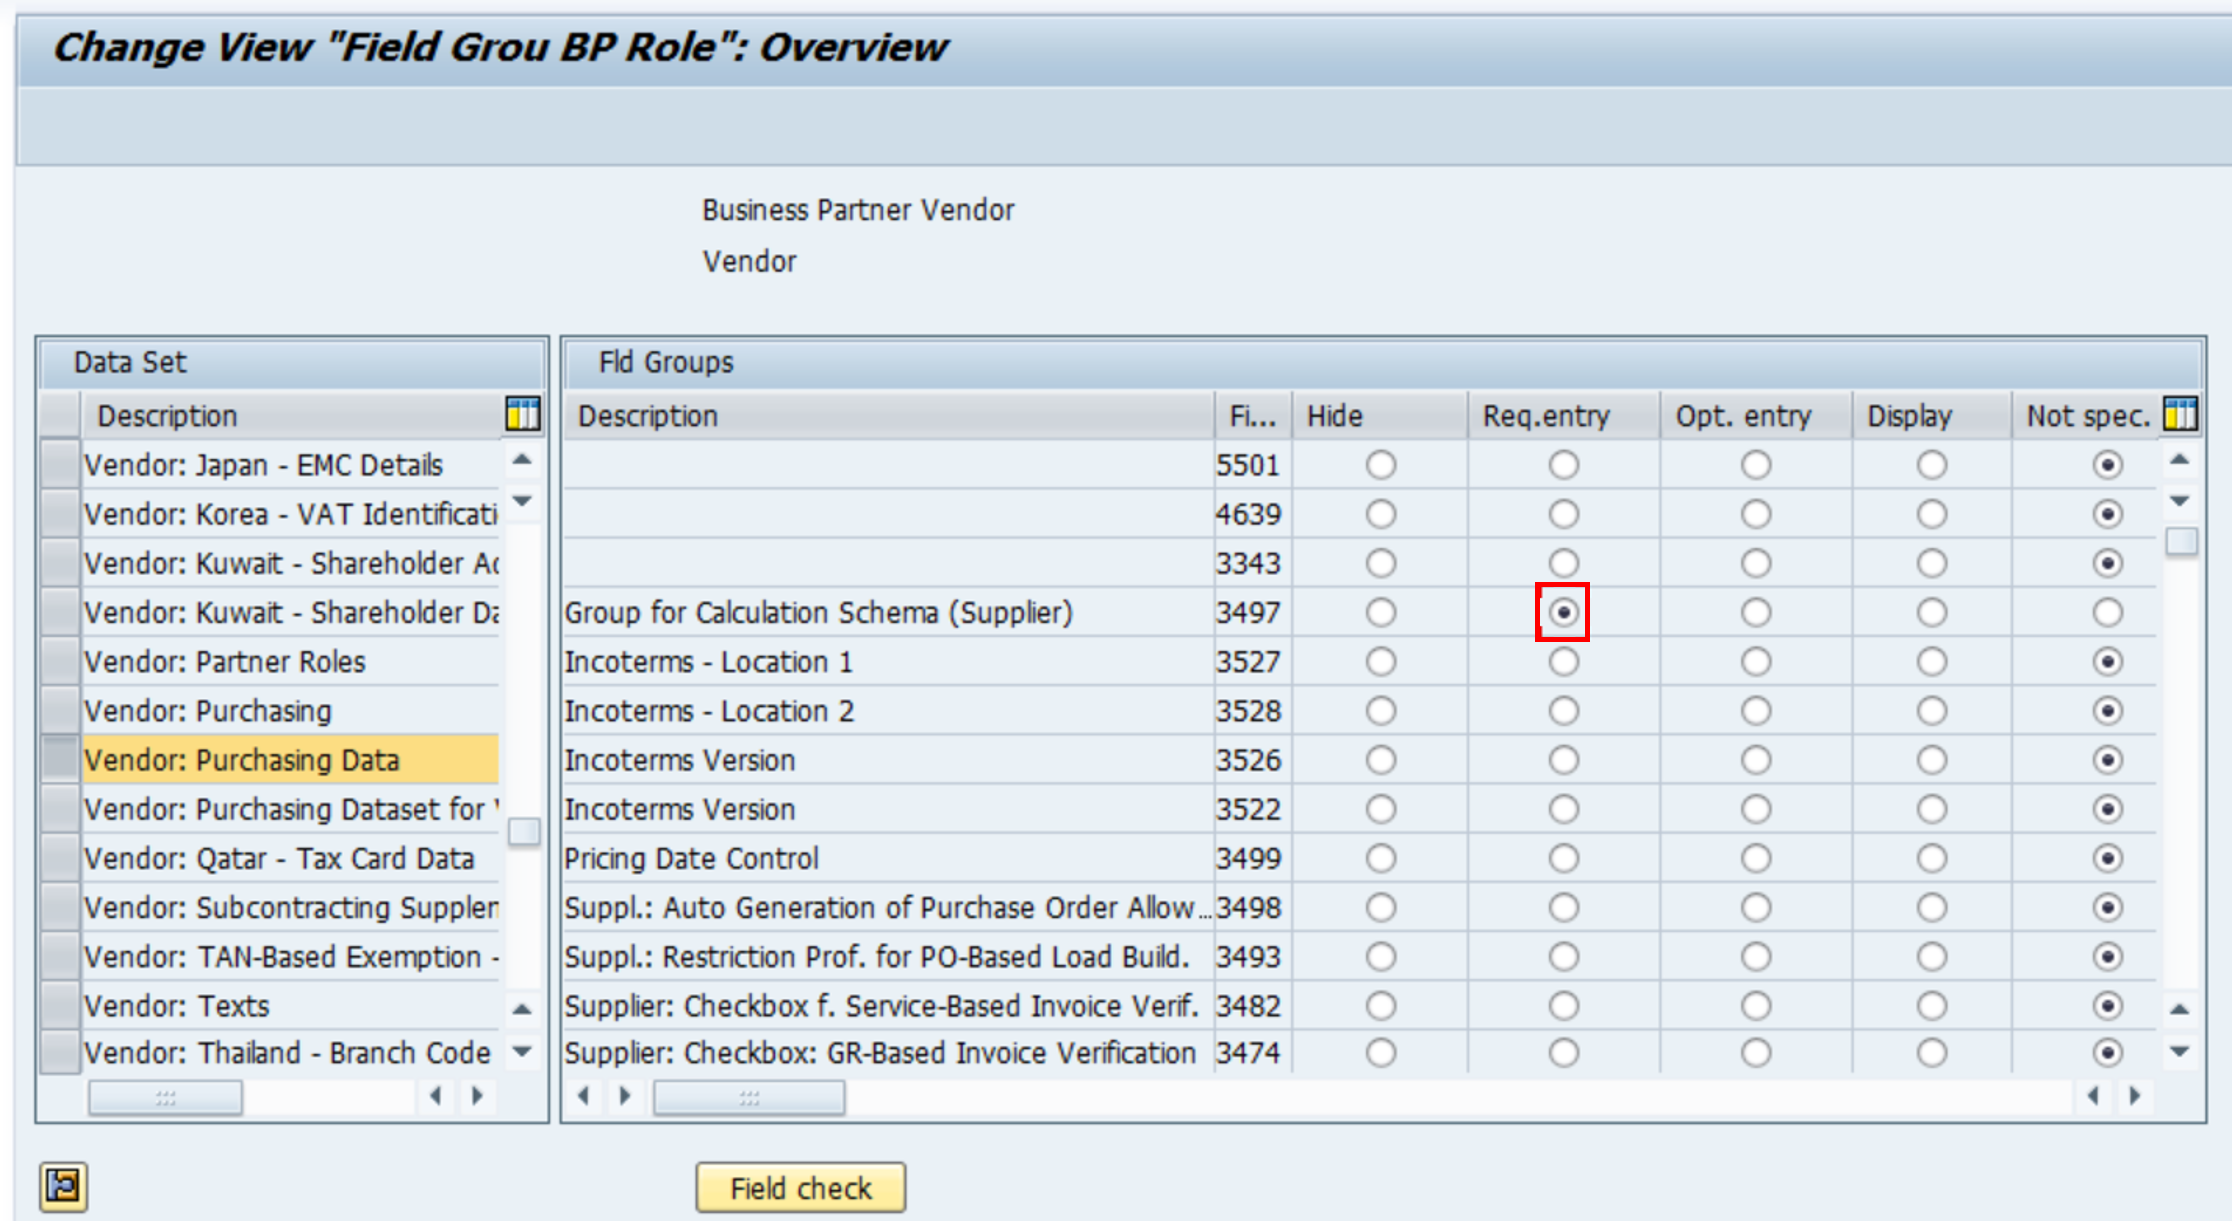 S/4 HANA – Do you have an issue in BP vendor field settings